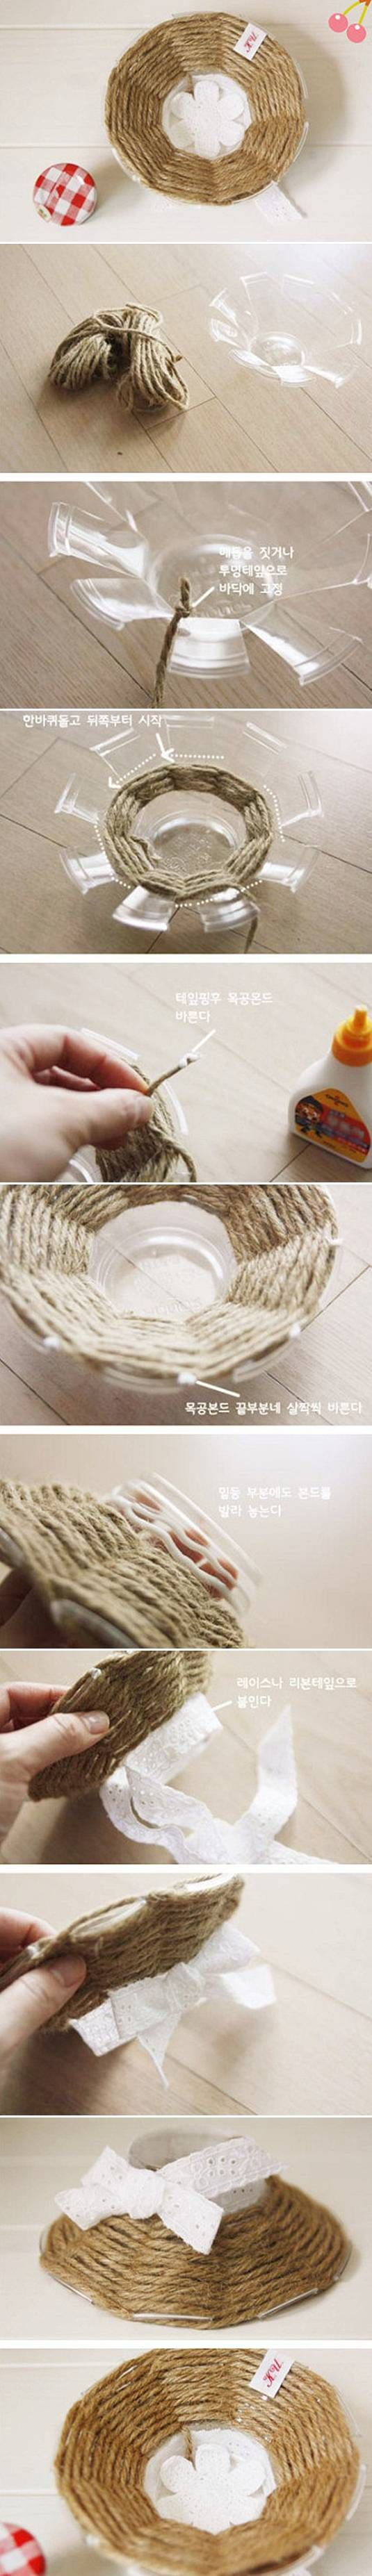 DIY Rope Storage Tray